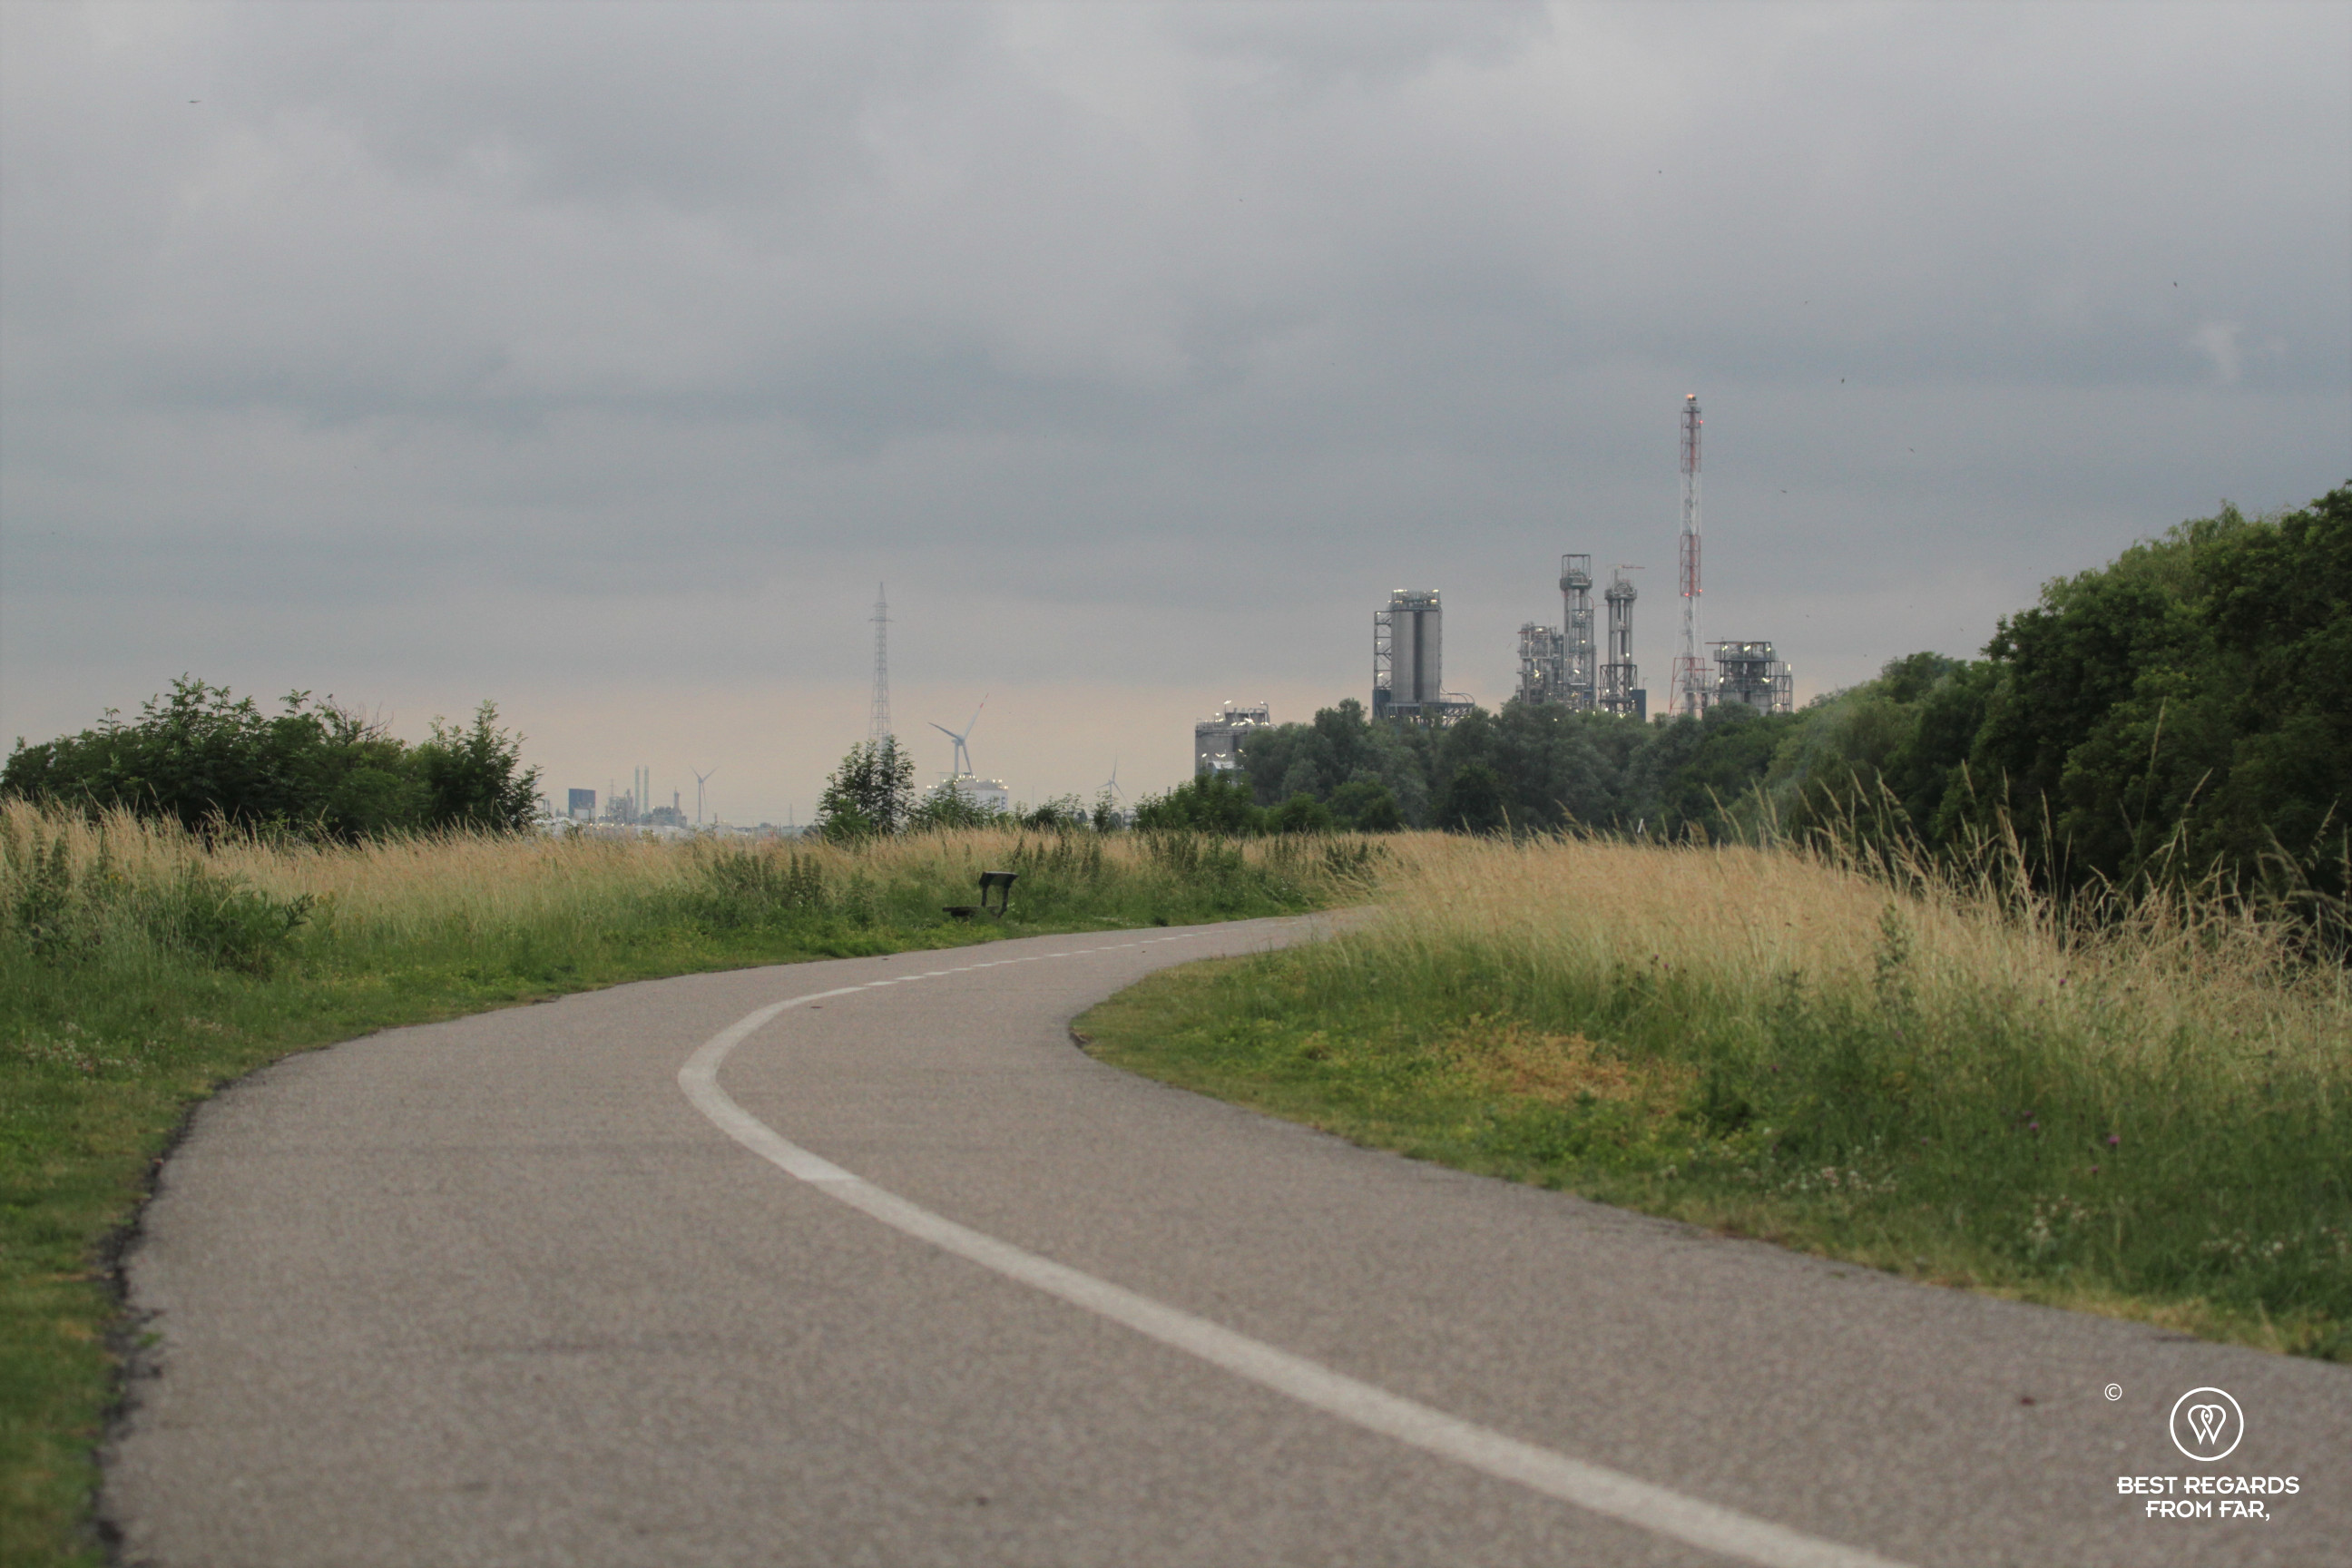 Cycle path leading to a refinery in the industrial harbour of Antwerp, Belgium